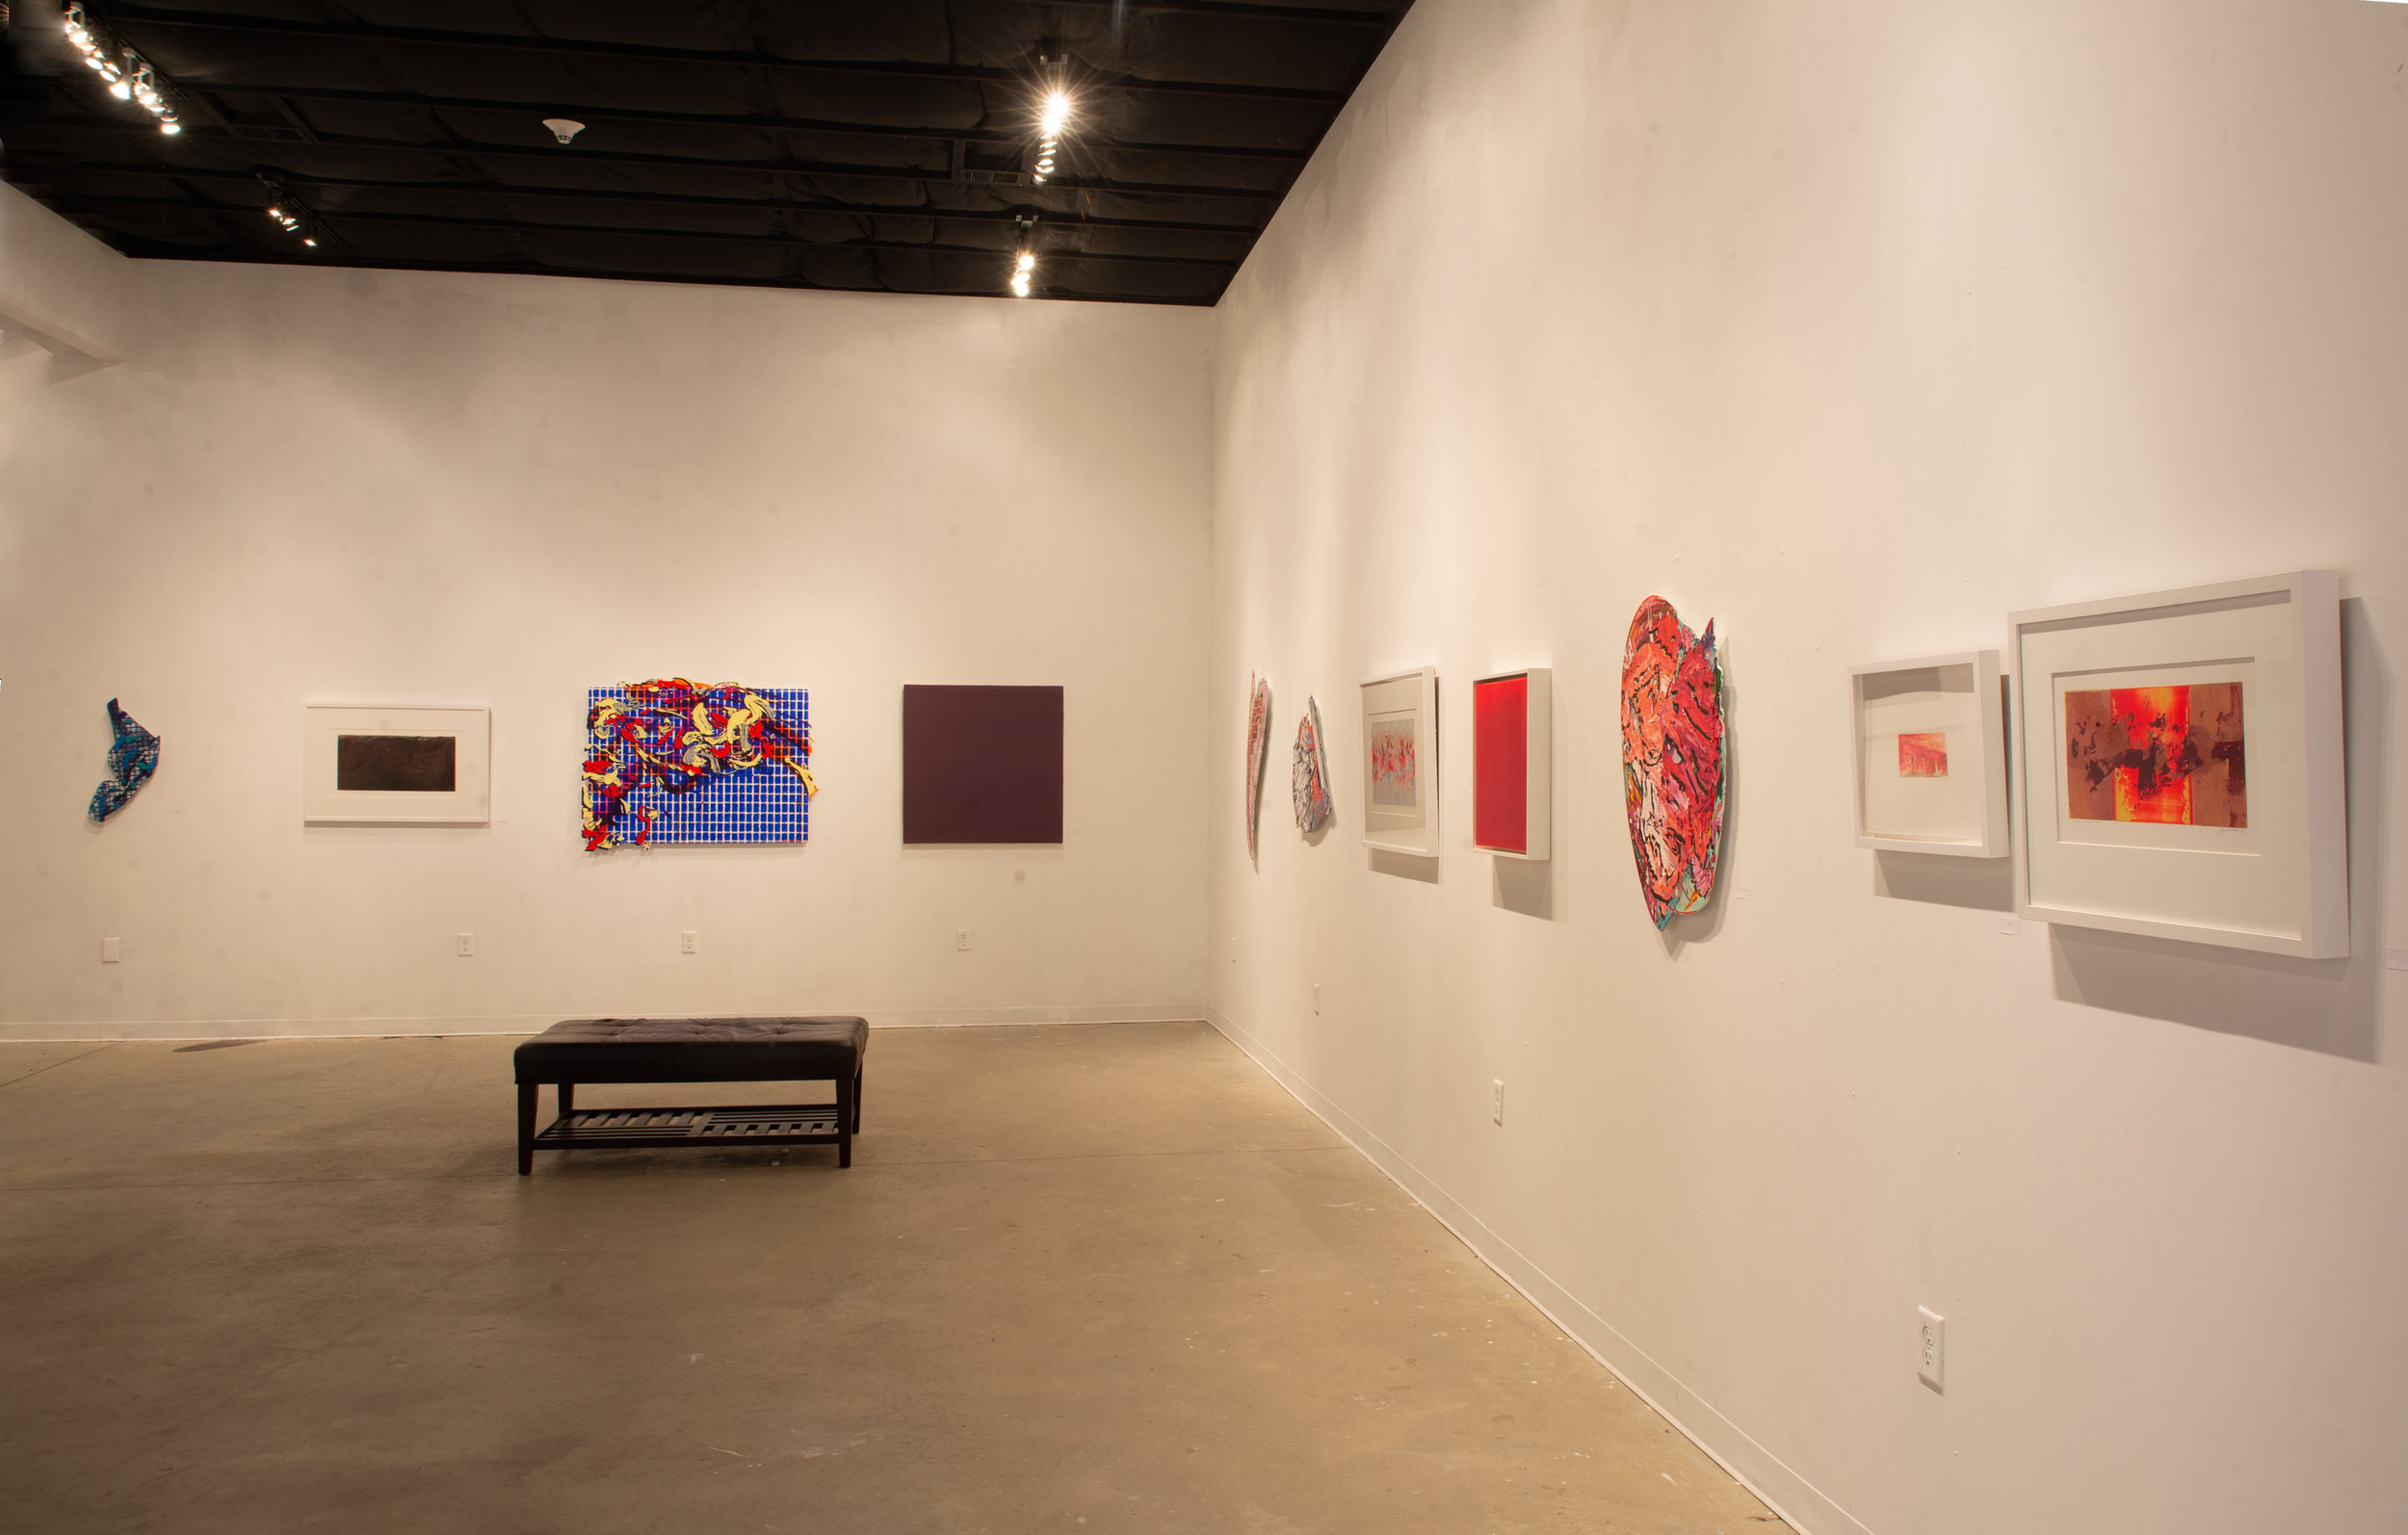 Gallery view of Liminal Manfestations